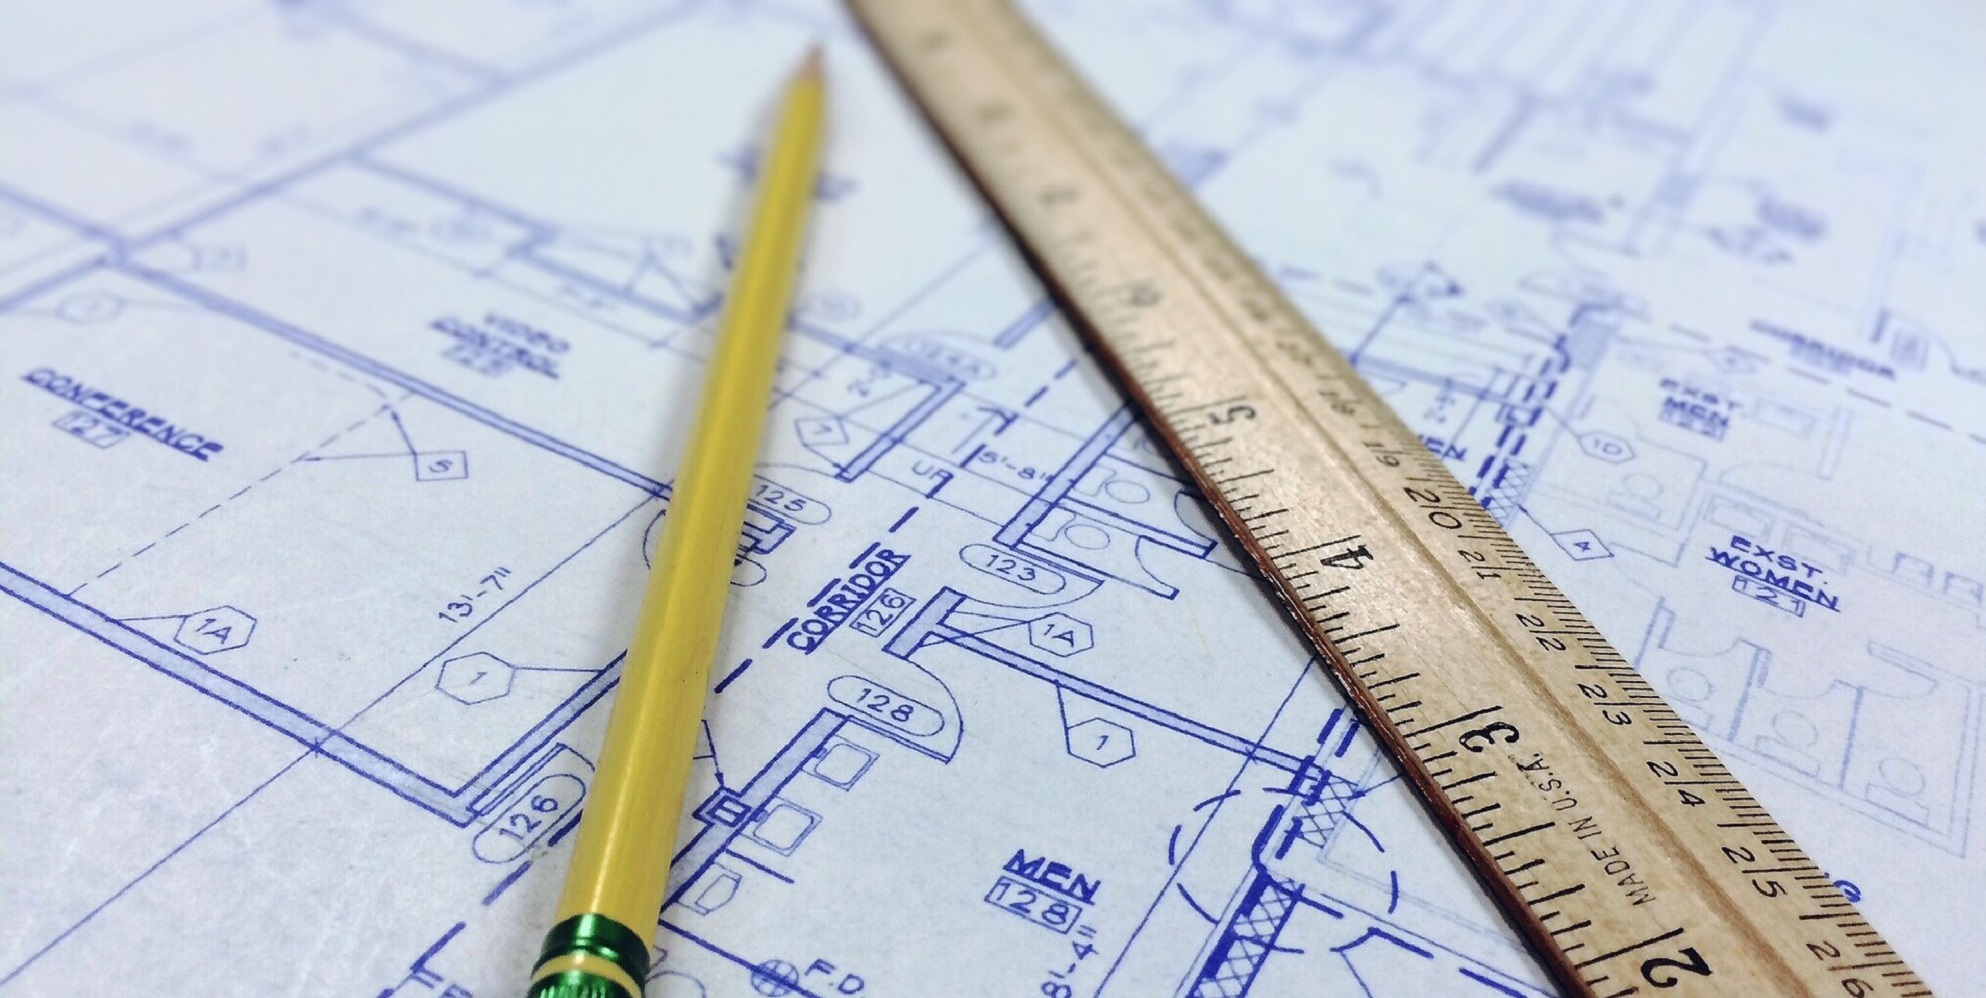 Planning permission: What you need it for and what will happen if you build without it